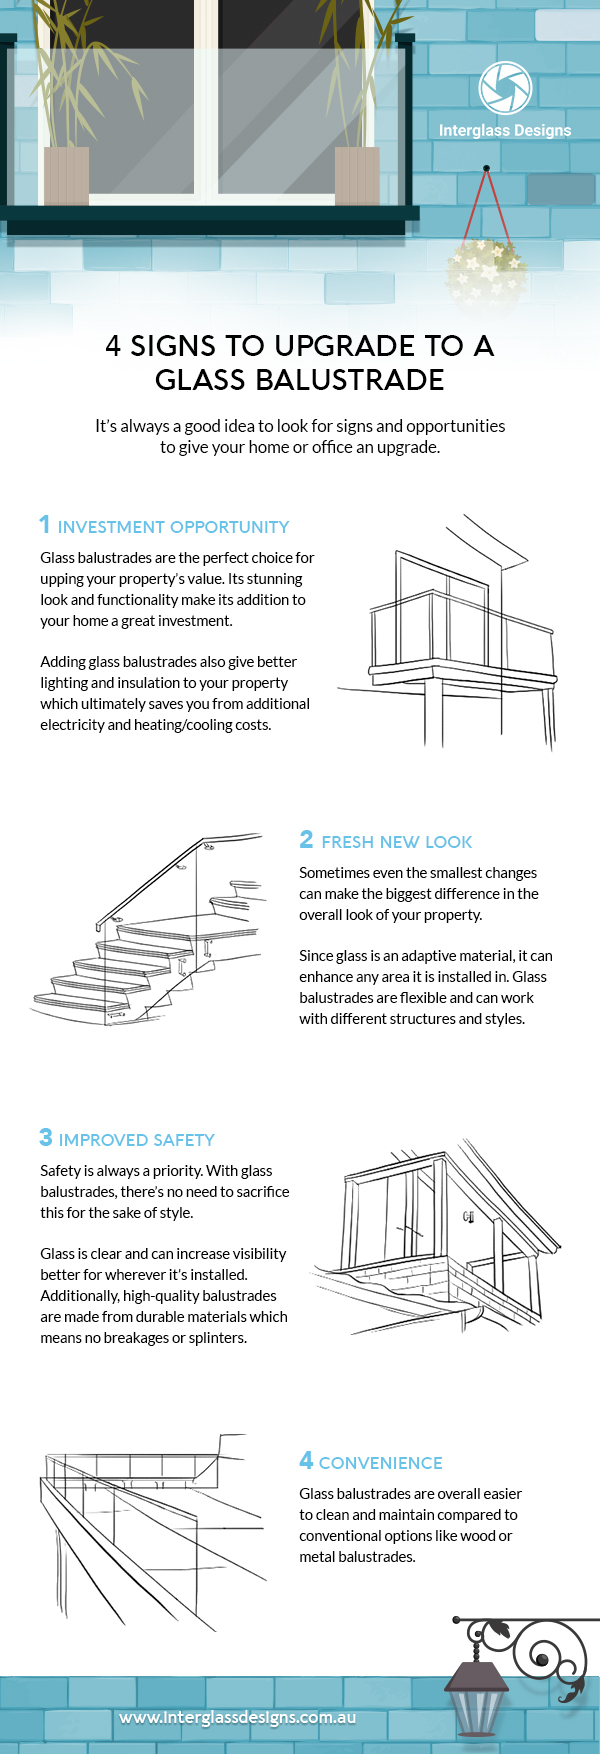 4 signs to upgrade to a glass balustrade infographic